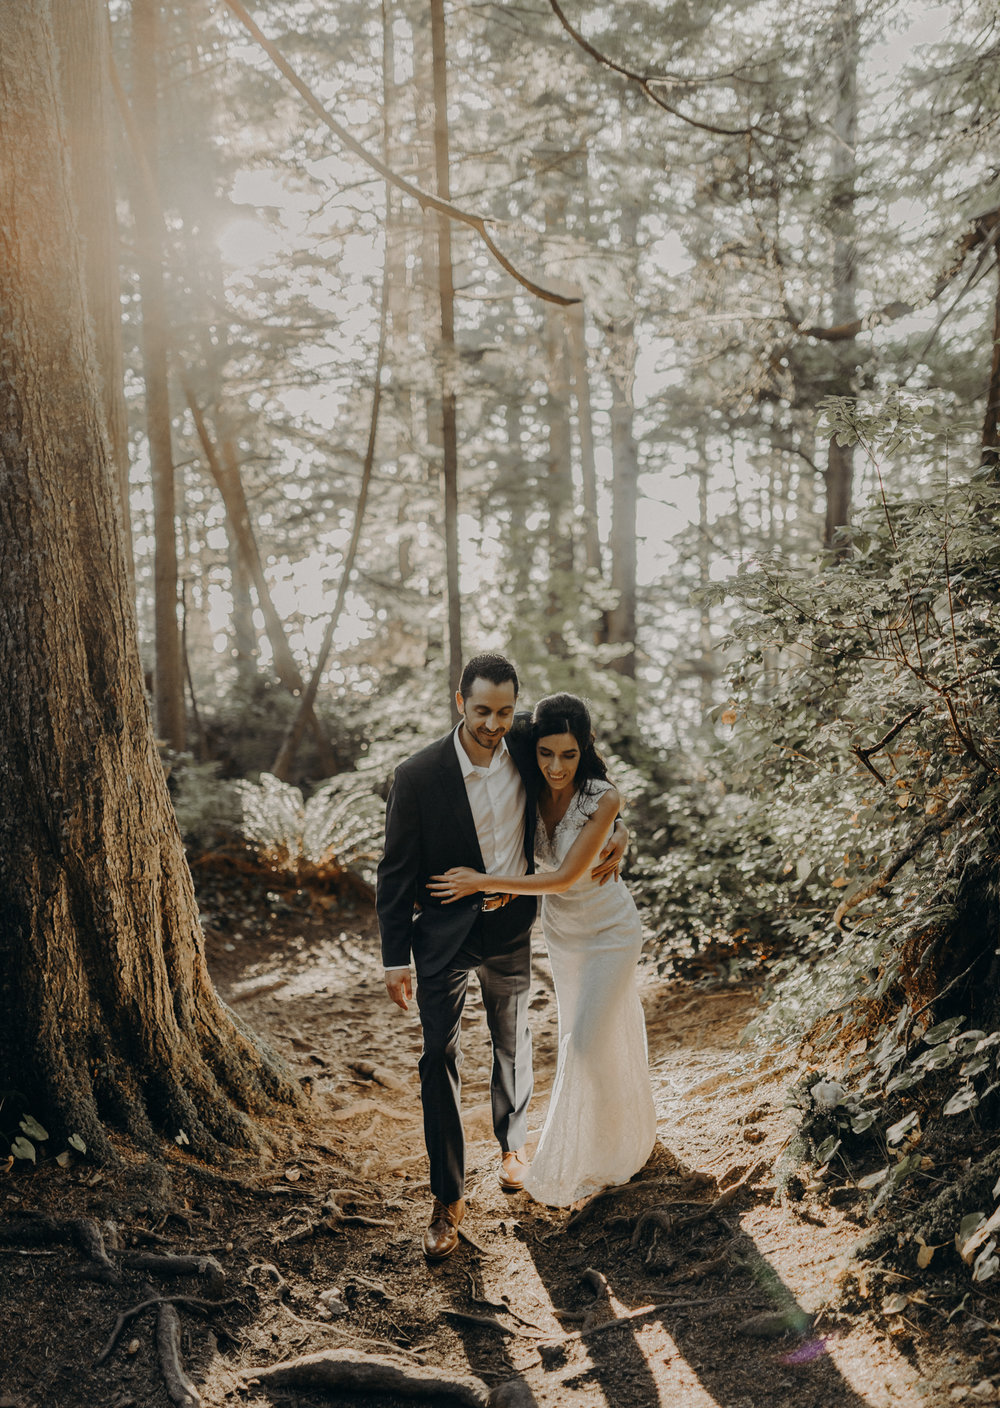 Isaiah + Taylor Photography - Cape Flattery Elopement, Olympia National Forest Wedding Photographer-121.jpg